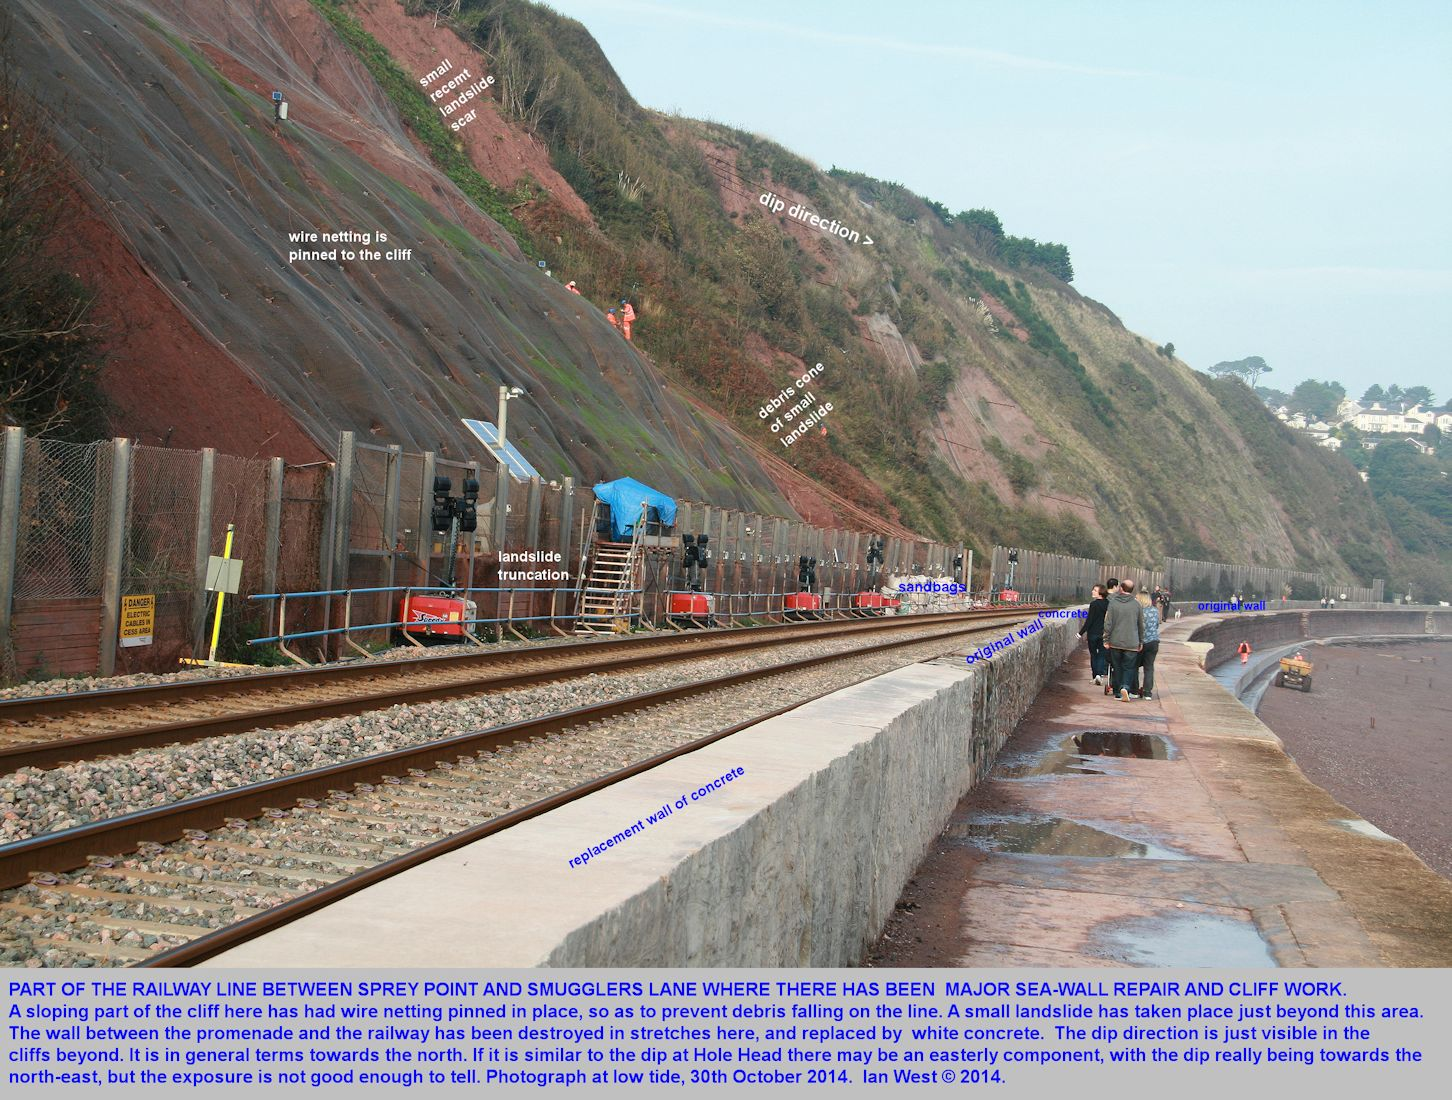 A part of the railway line, promenade and cliff between Sprey Point and Smugglers Lane, Teignmouth to Dawlish, Devon, seriously damaged by February 2014 storms and subsequently repaired